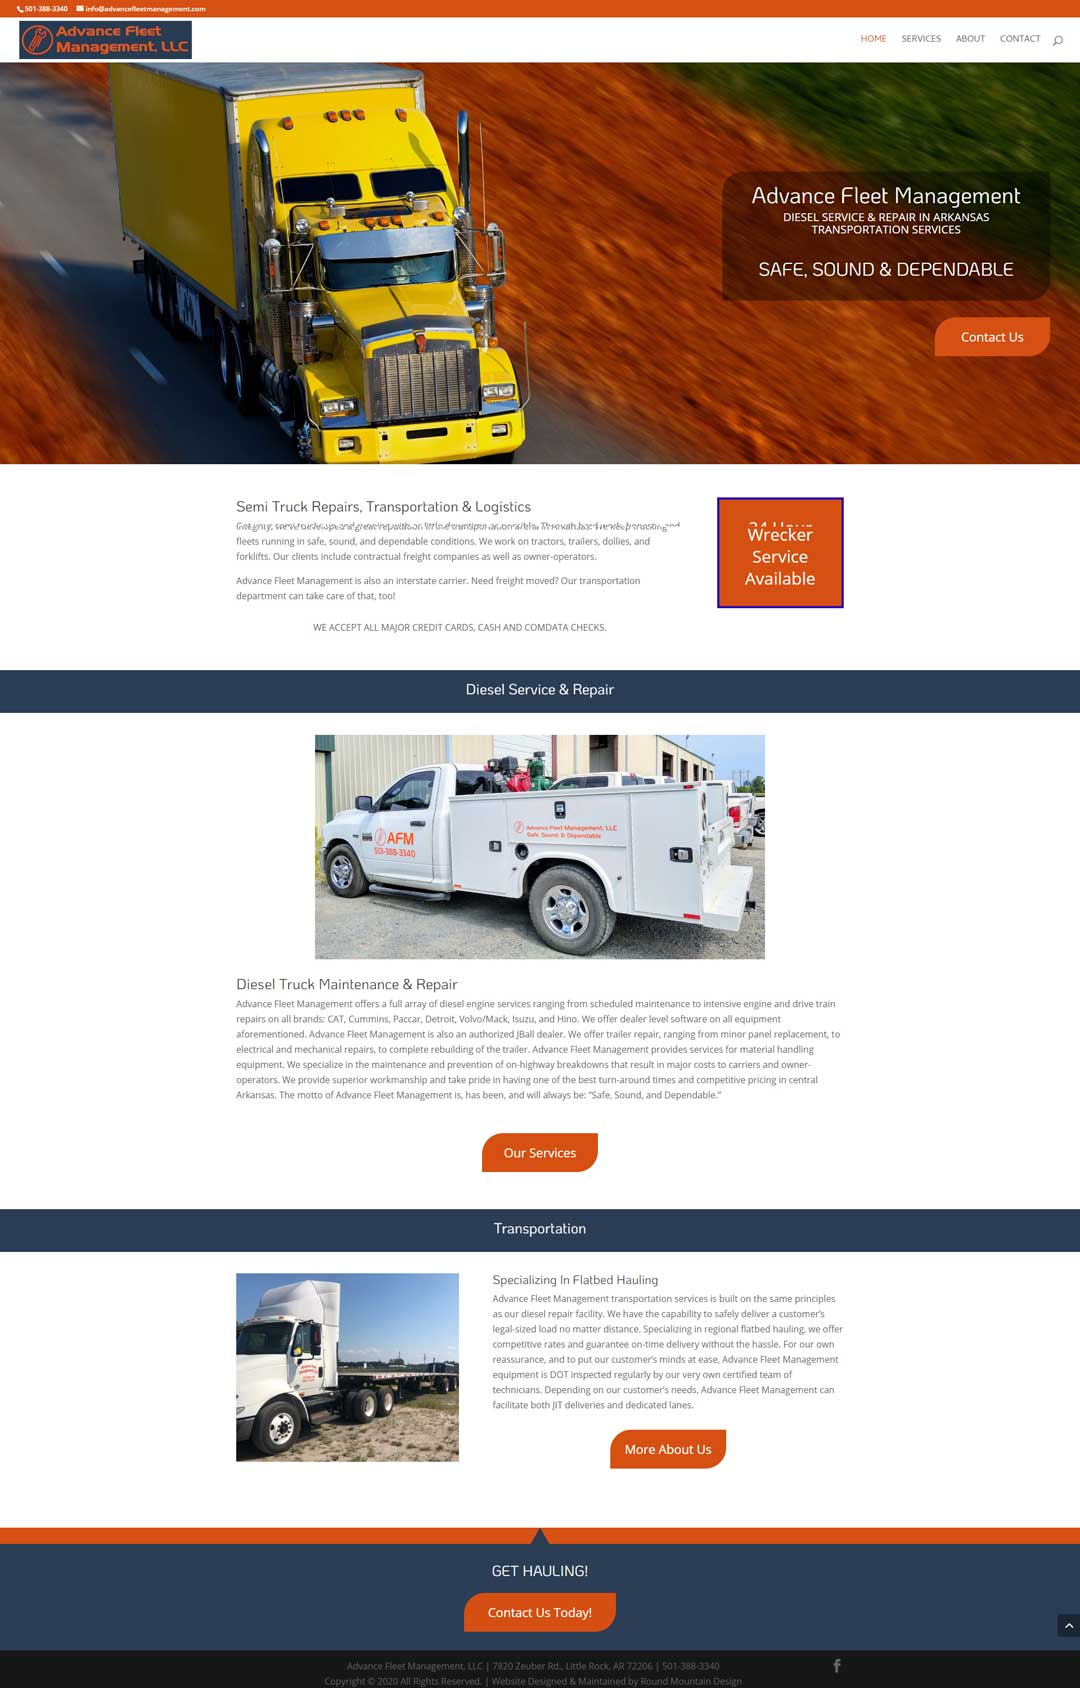 Website design for Advance Fleet Management